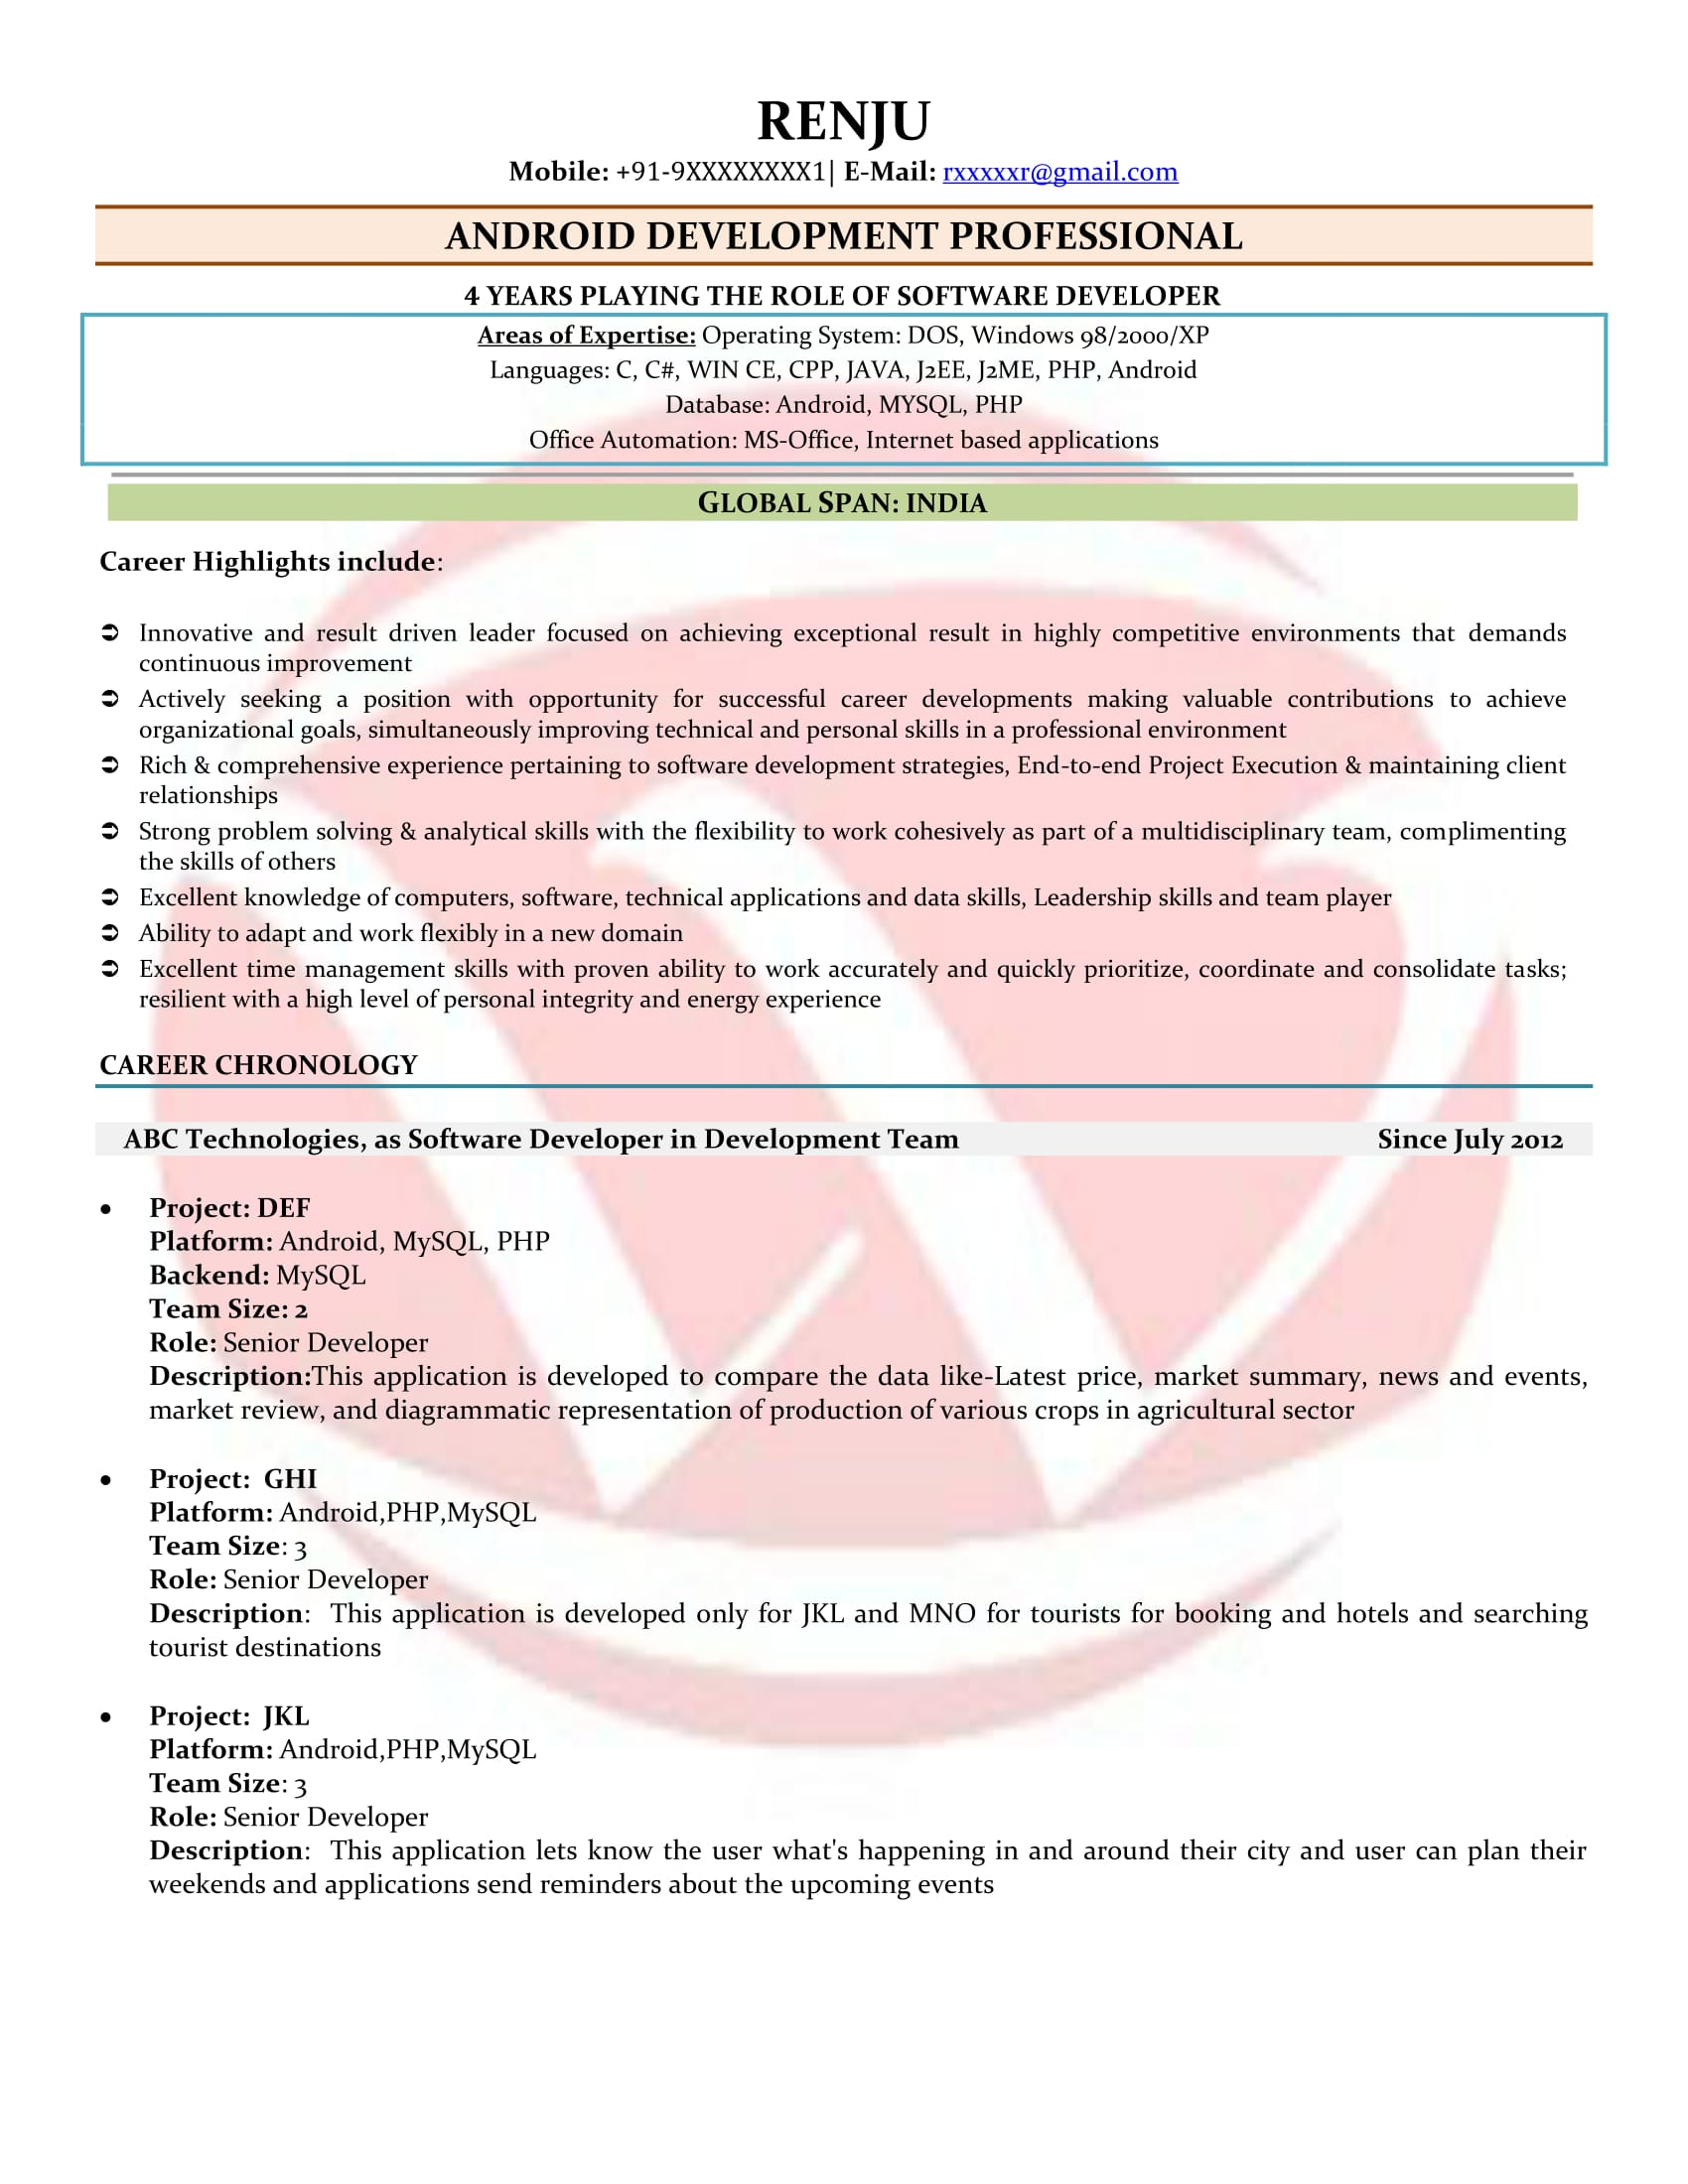 android developer sample resumes download resume format templates